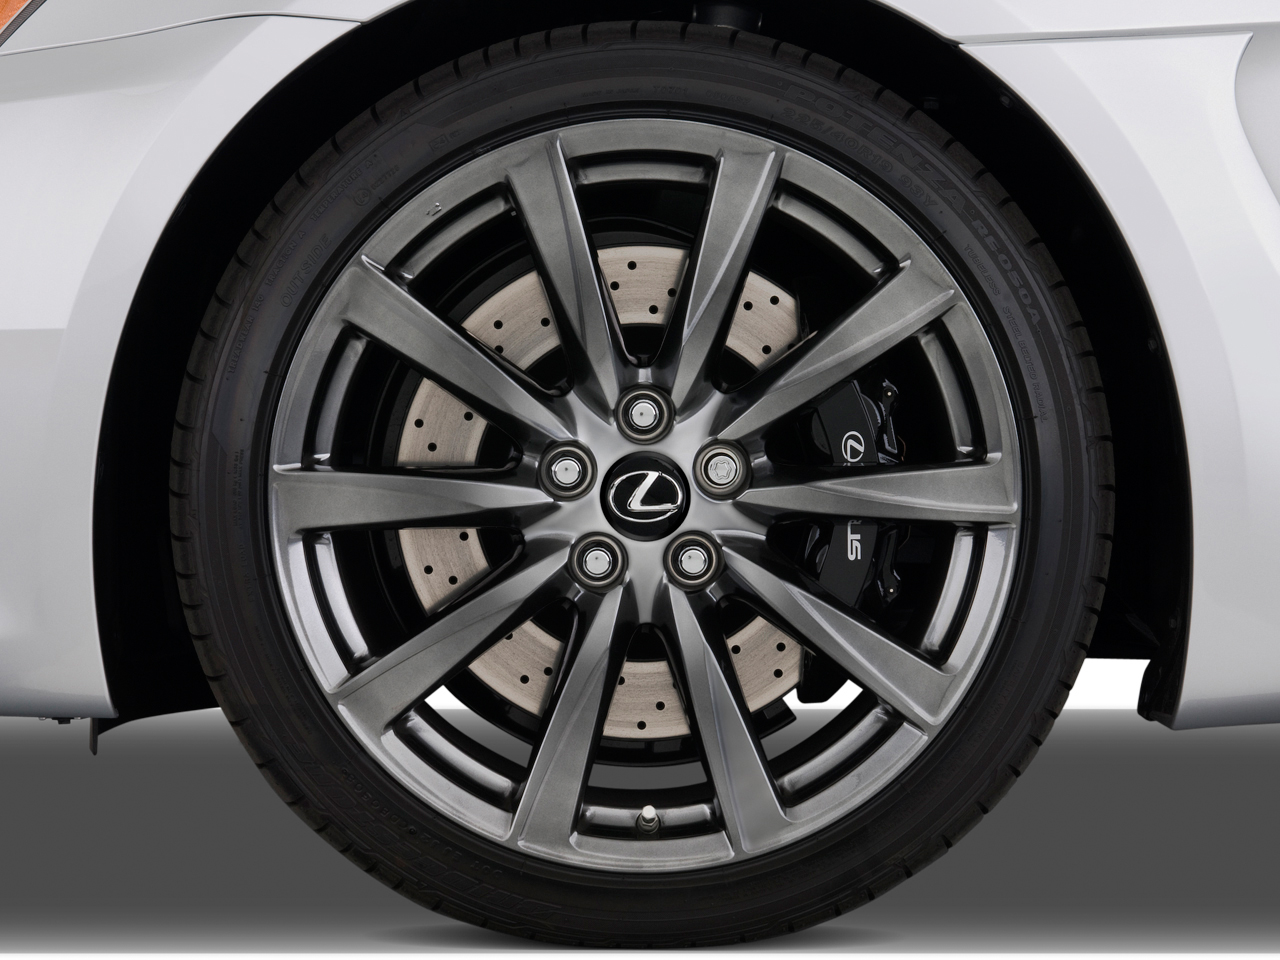 Lexus IS F wheels #3